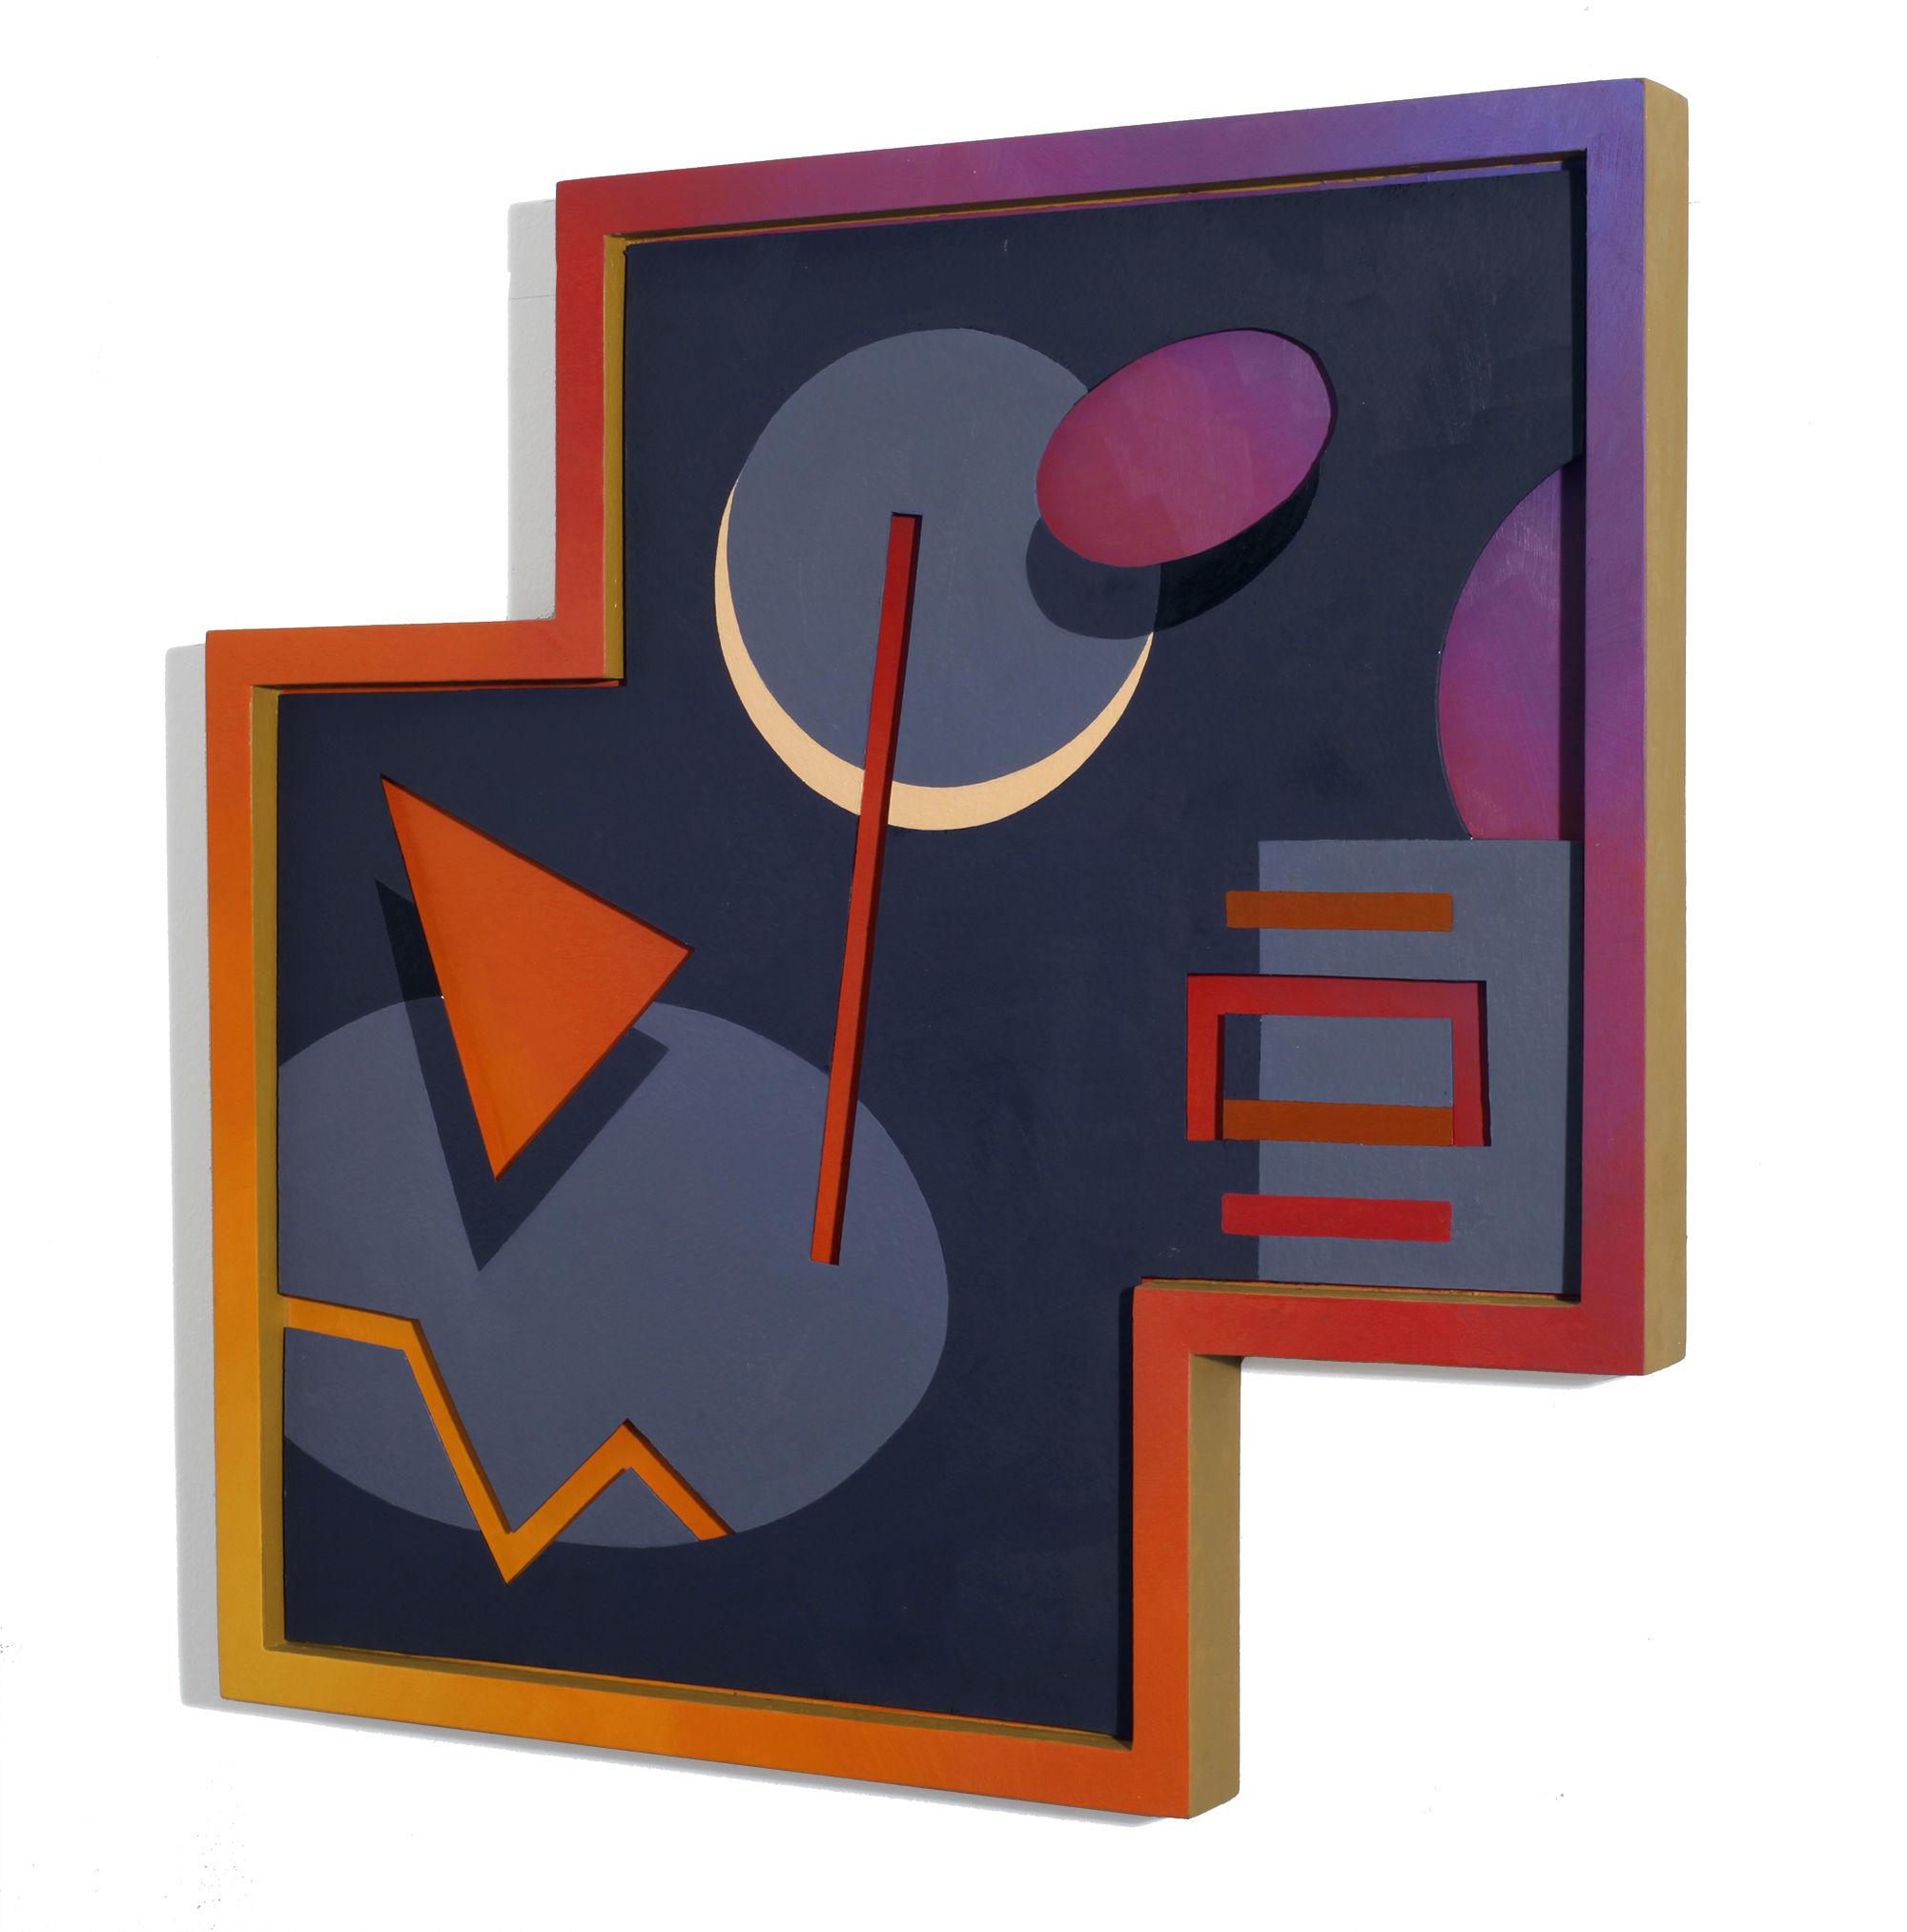 Moonfire  20 x 20 in, Oil on shaped paper and wood frame, 2014